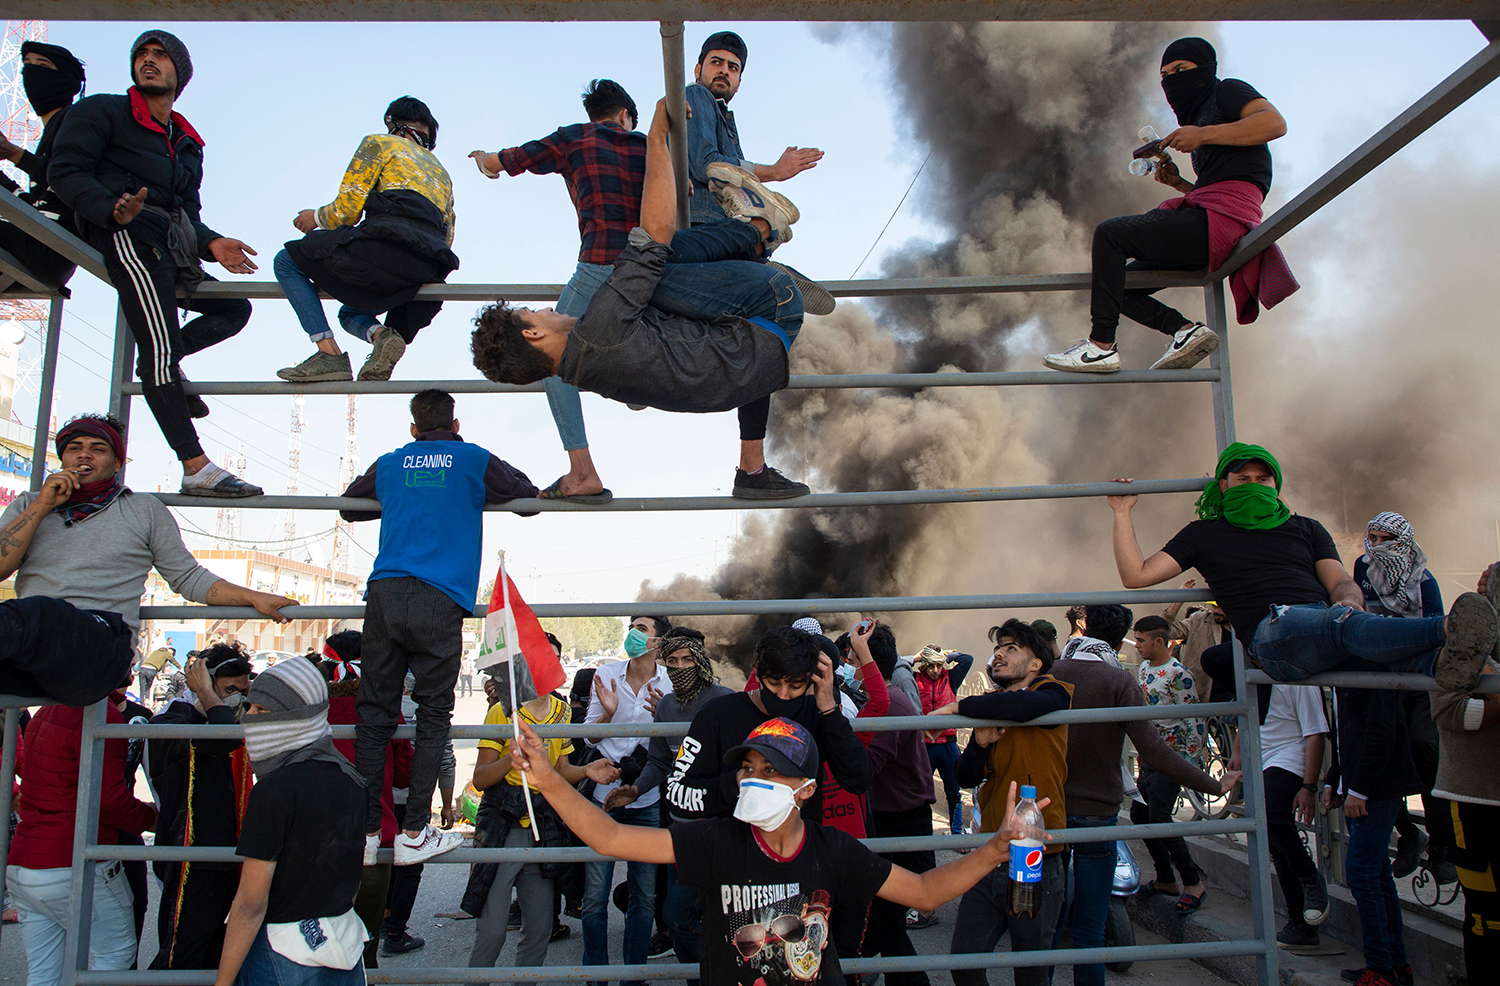 Protesters climb the metal beams of a former advertisement frame  used as a makeshift roadblock during clashes with security forces in Iraq's southern city of Basra on Jan. 20. HUSSEIN FALEH/AFP via Getty Images